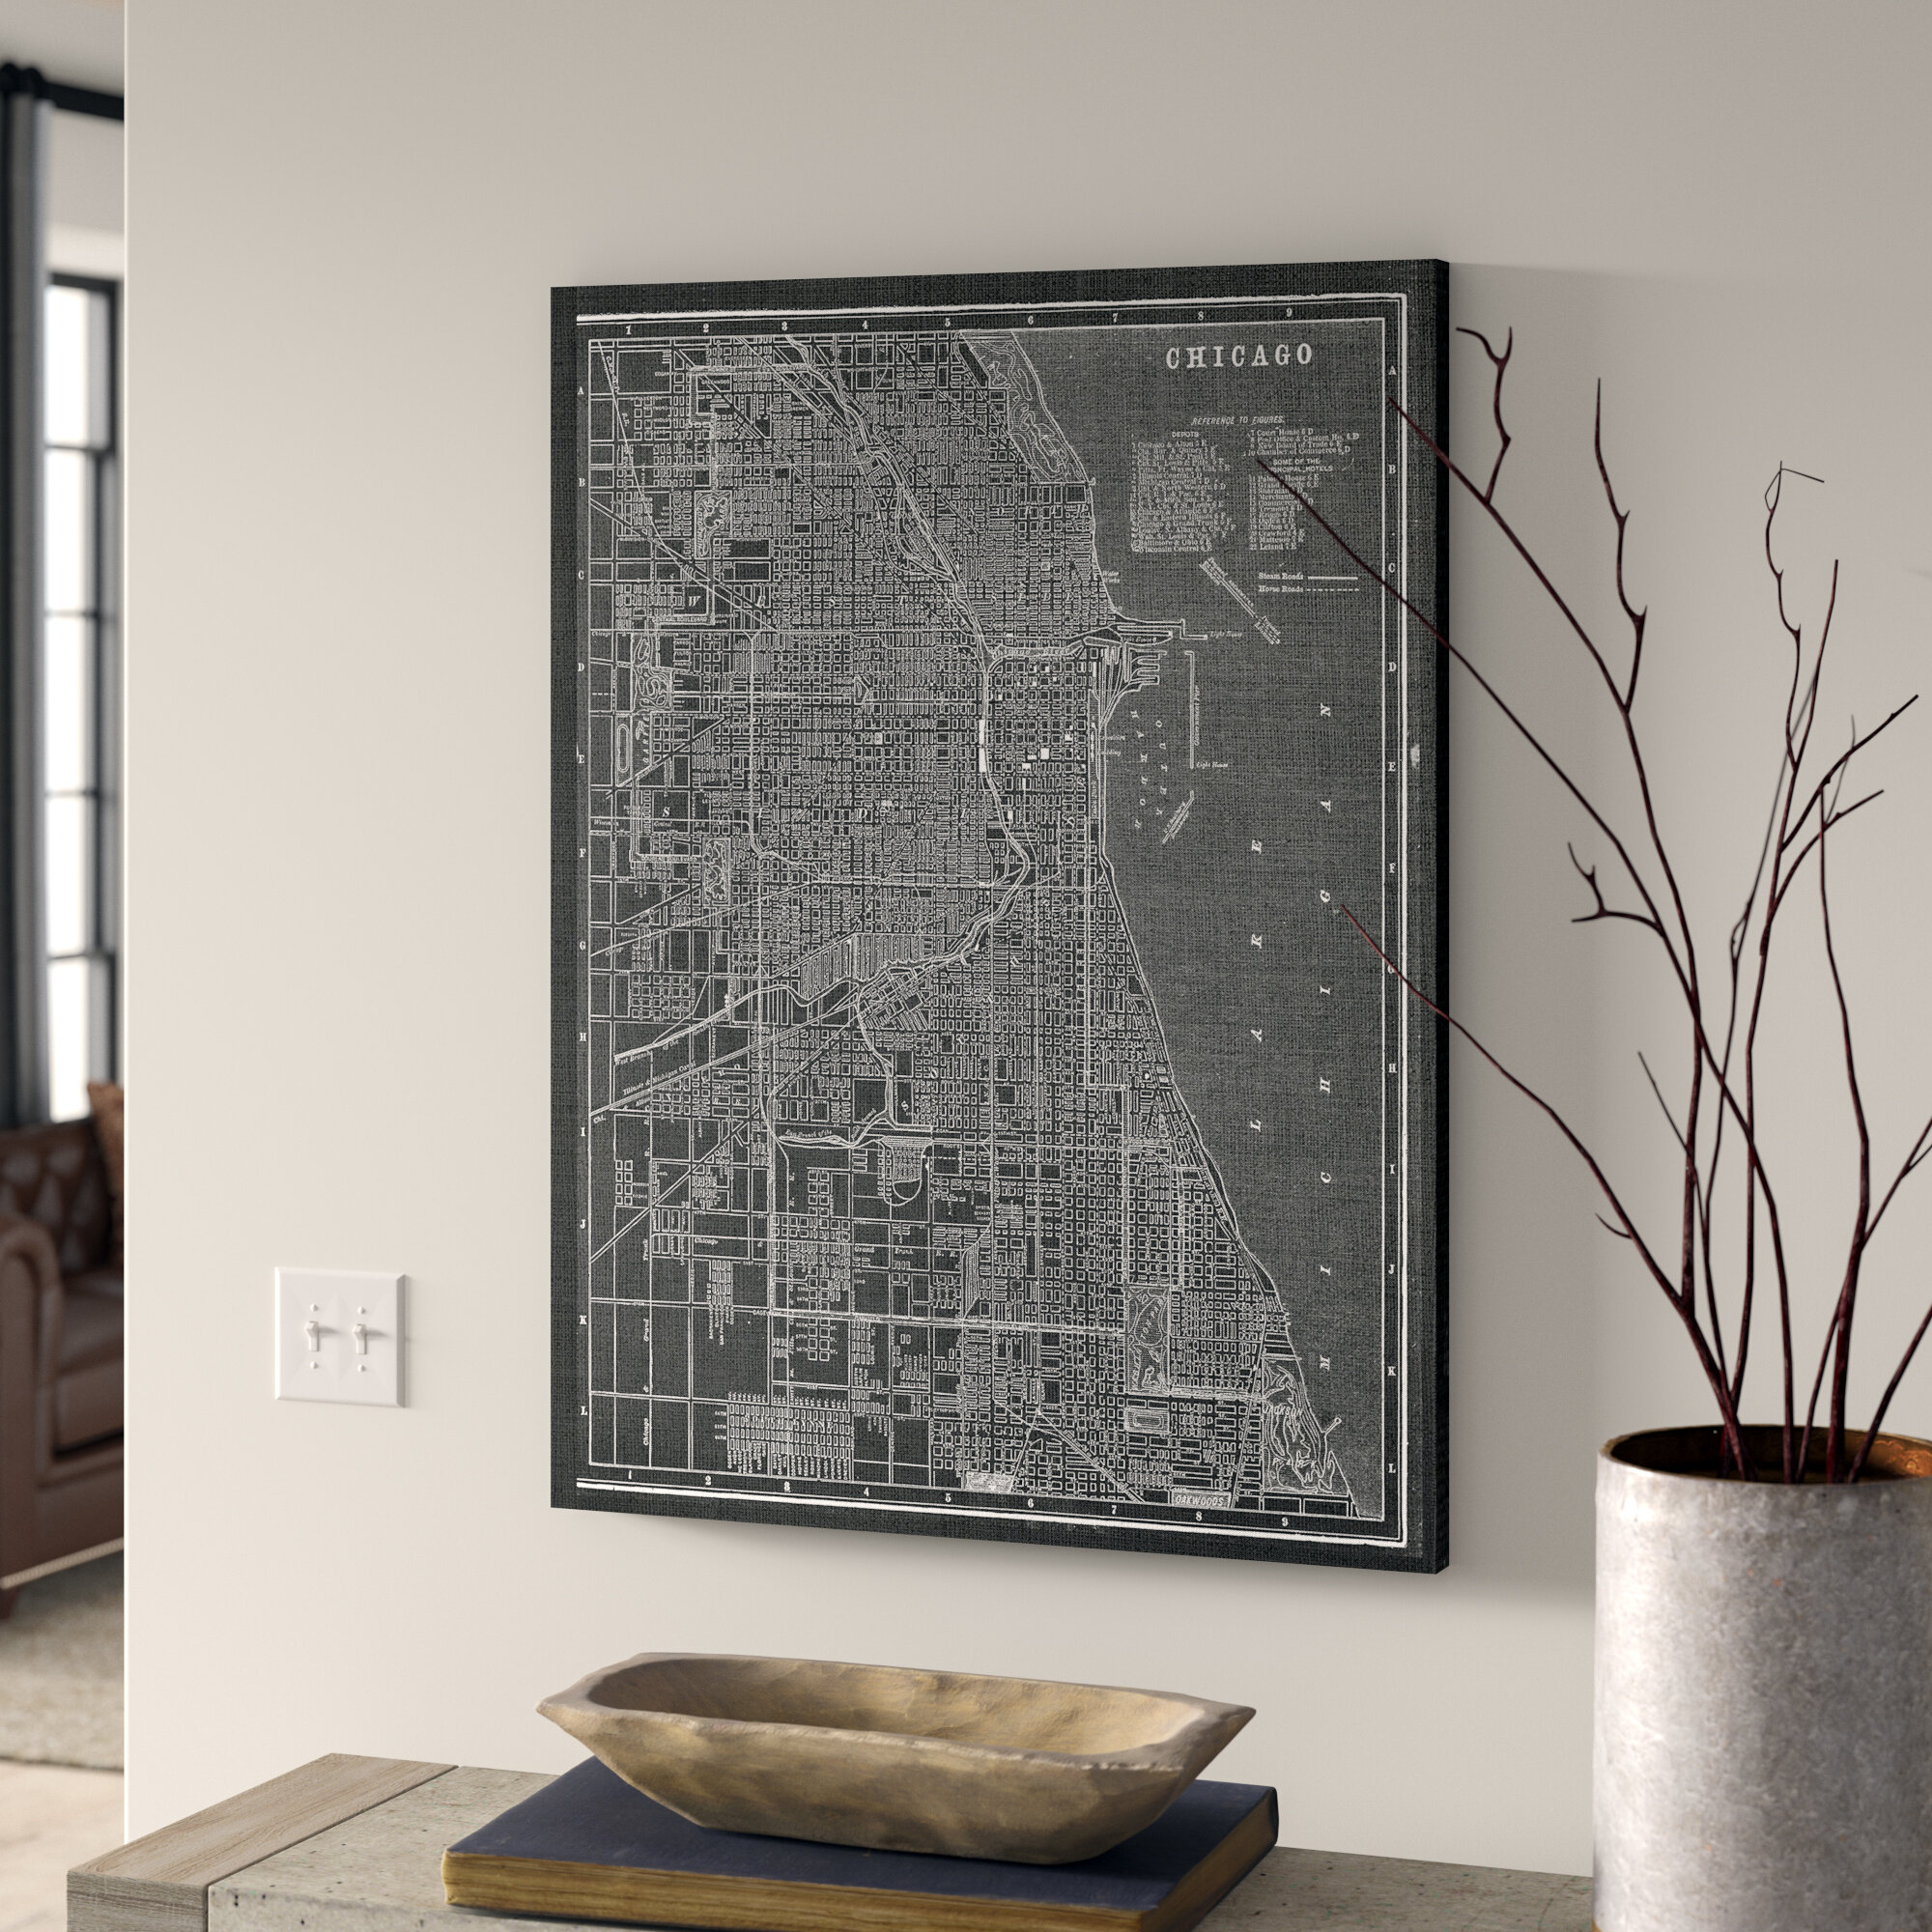 Chicago Map Canvas.Greyleigh Chicago Sketch Map Graphic Art Print On Wrapped Canvas